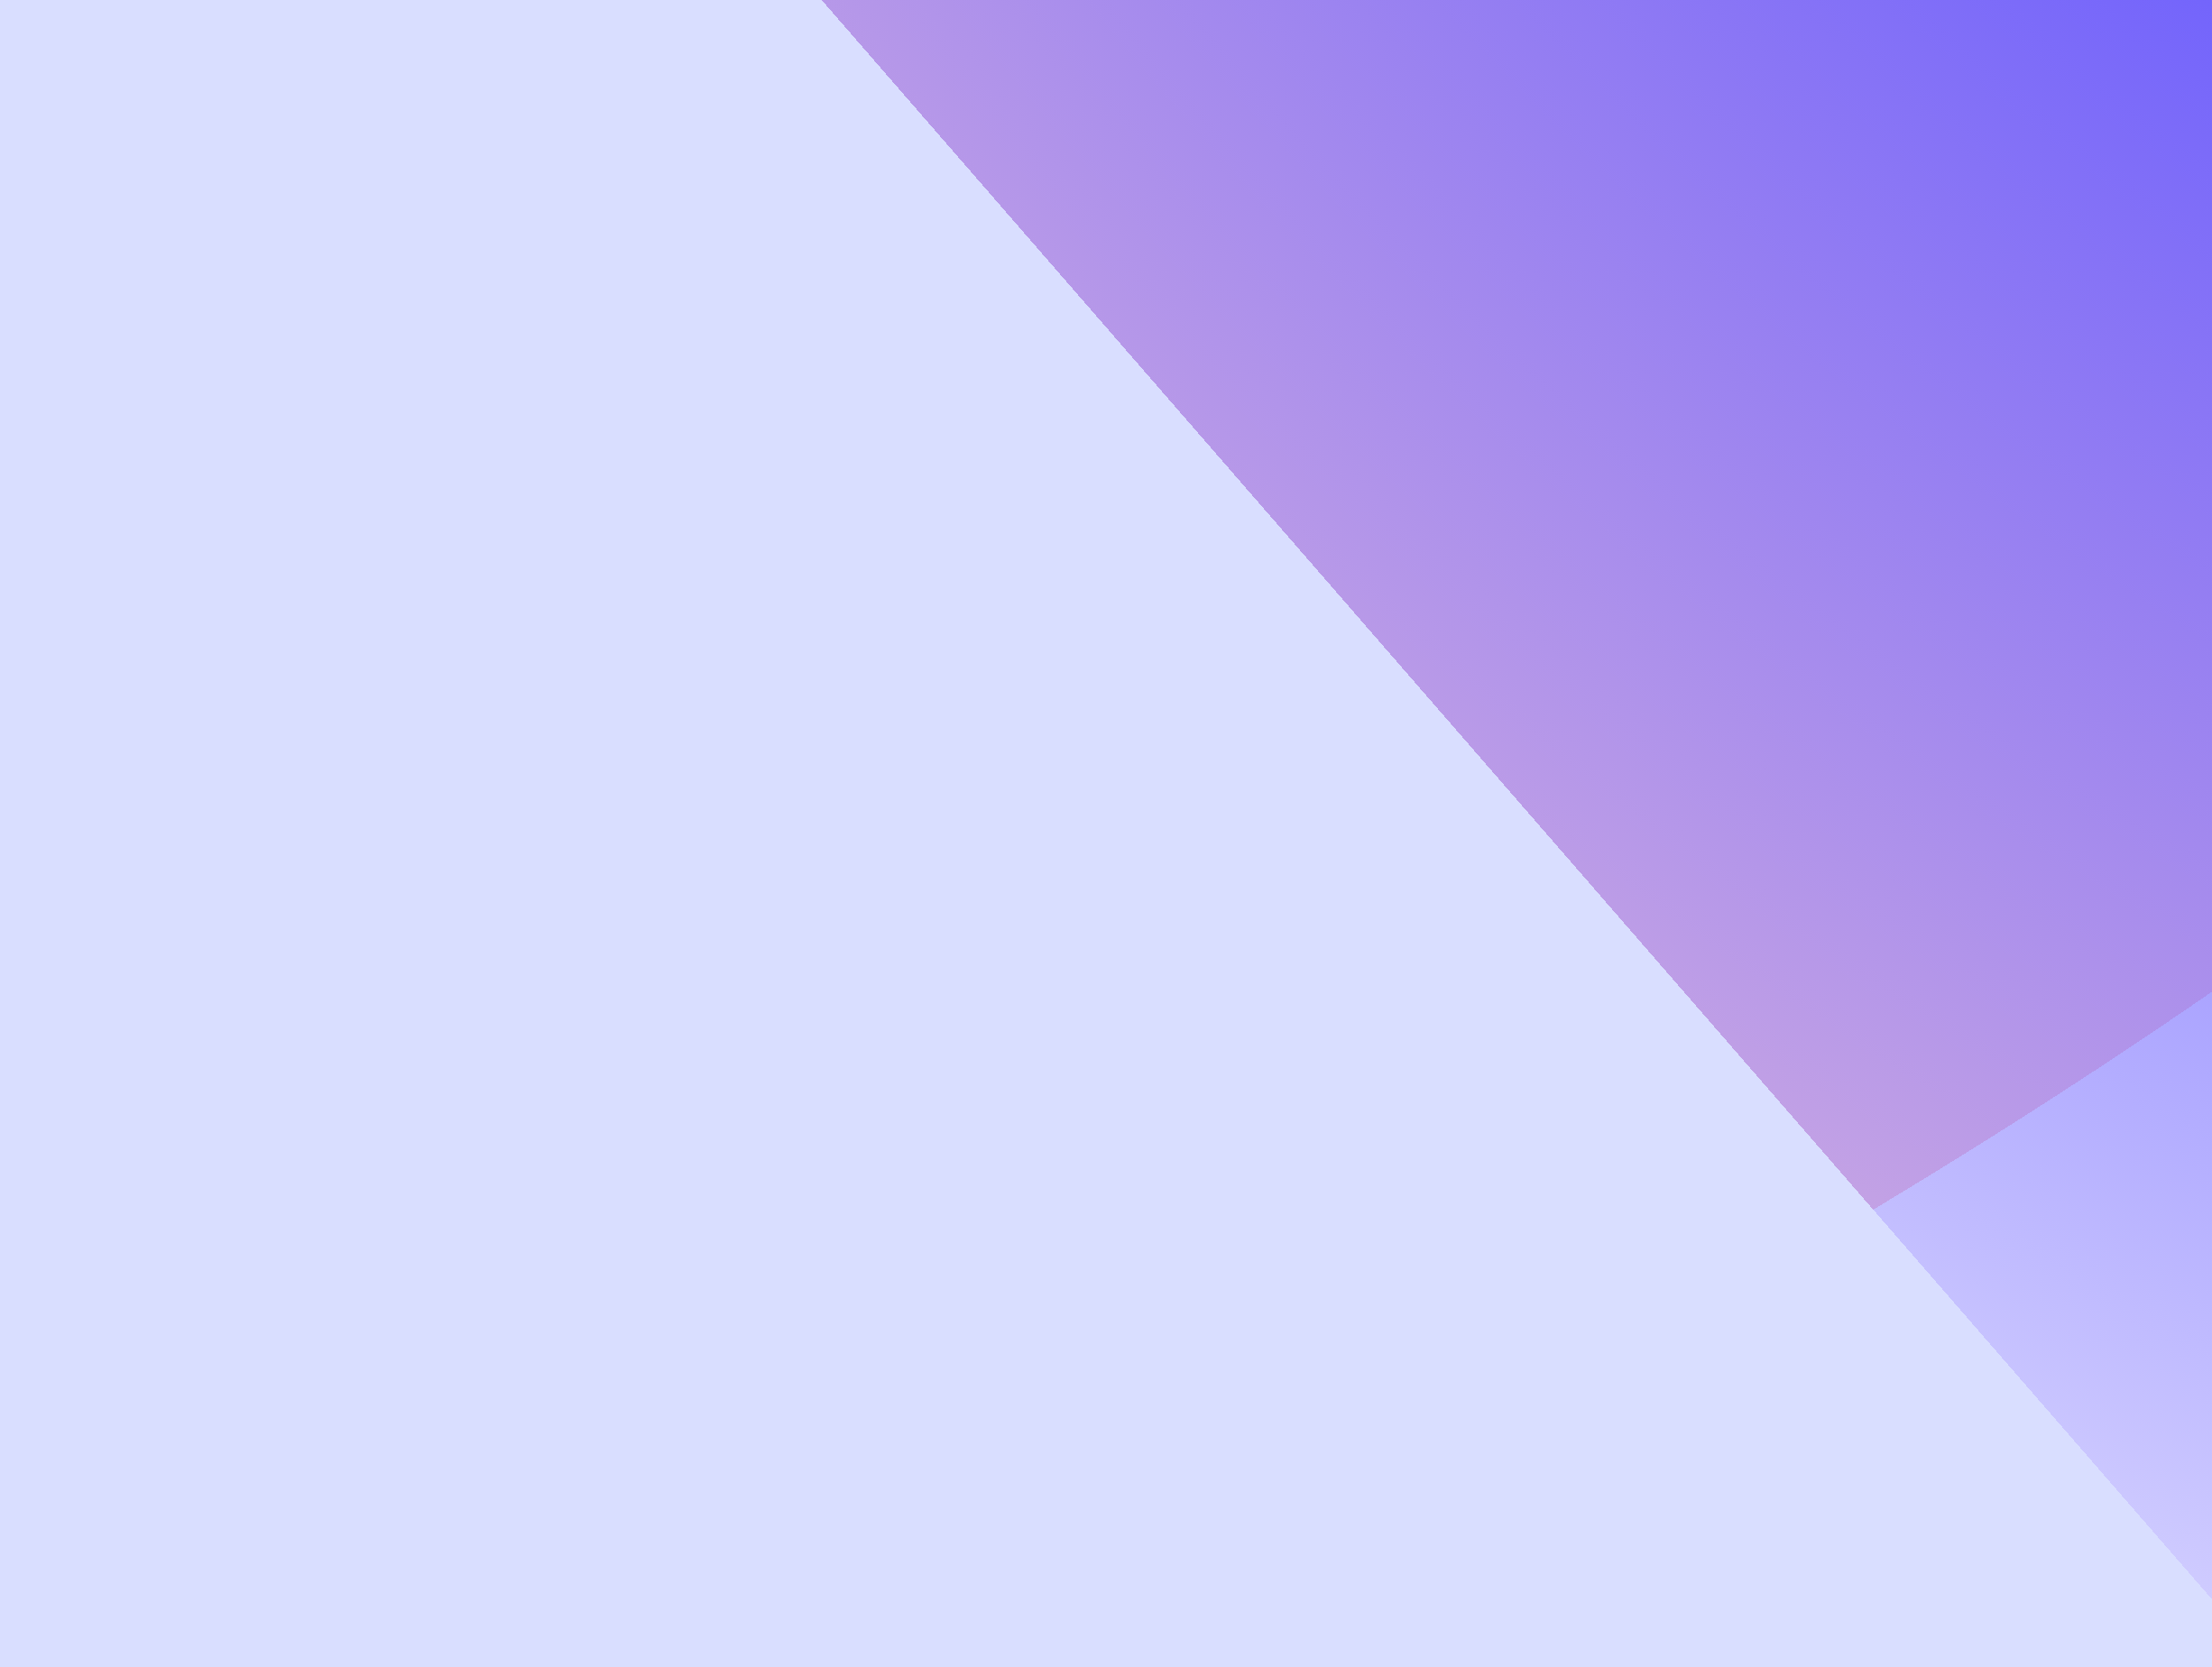 Gradient with hard line color stop